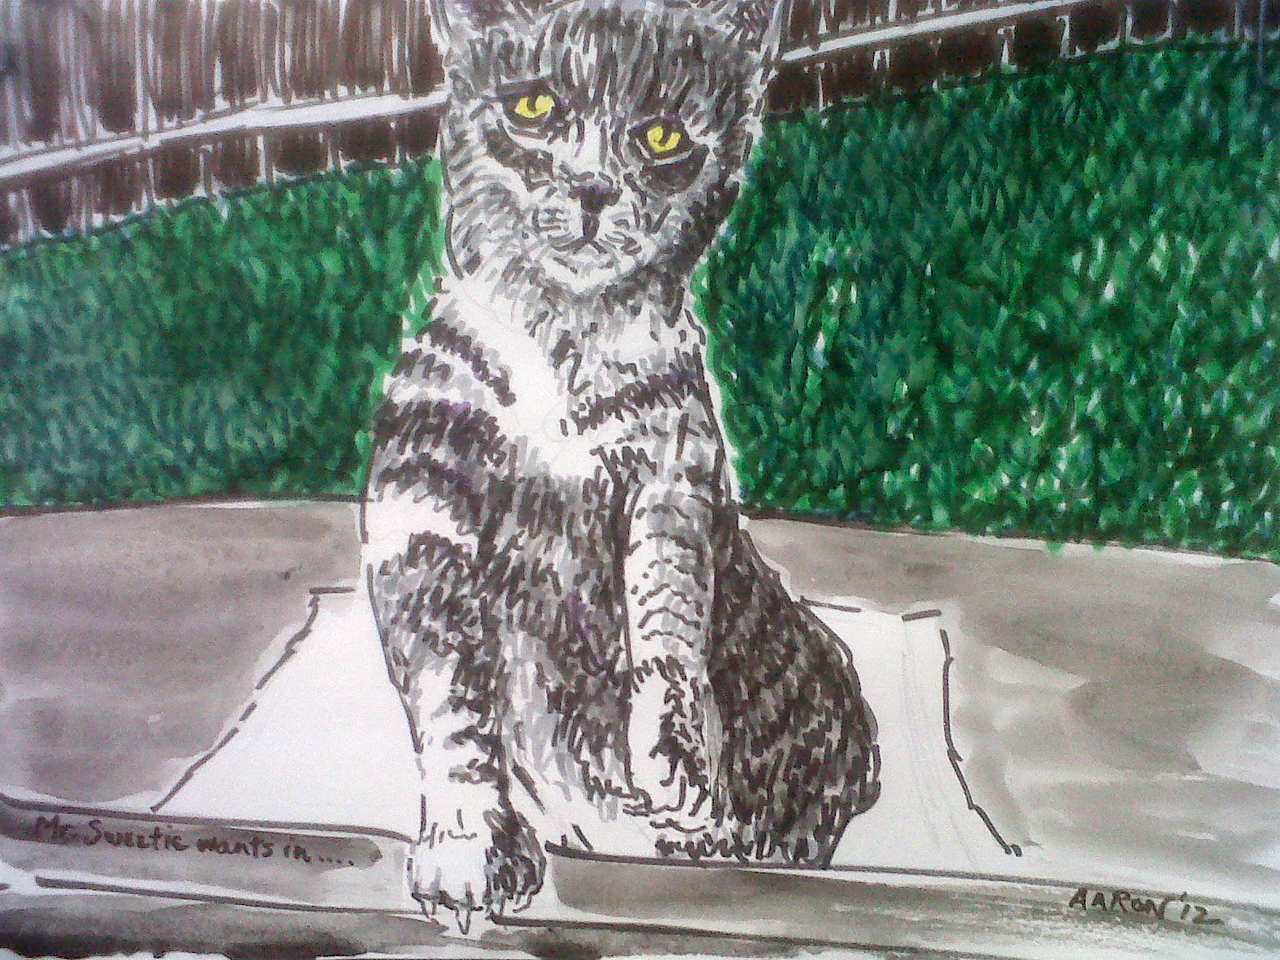 """Mr. Sweetie Wants In... Watercolor, ink on paper 9"""" x 12"""" Private Collection, Ojai, CA"""